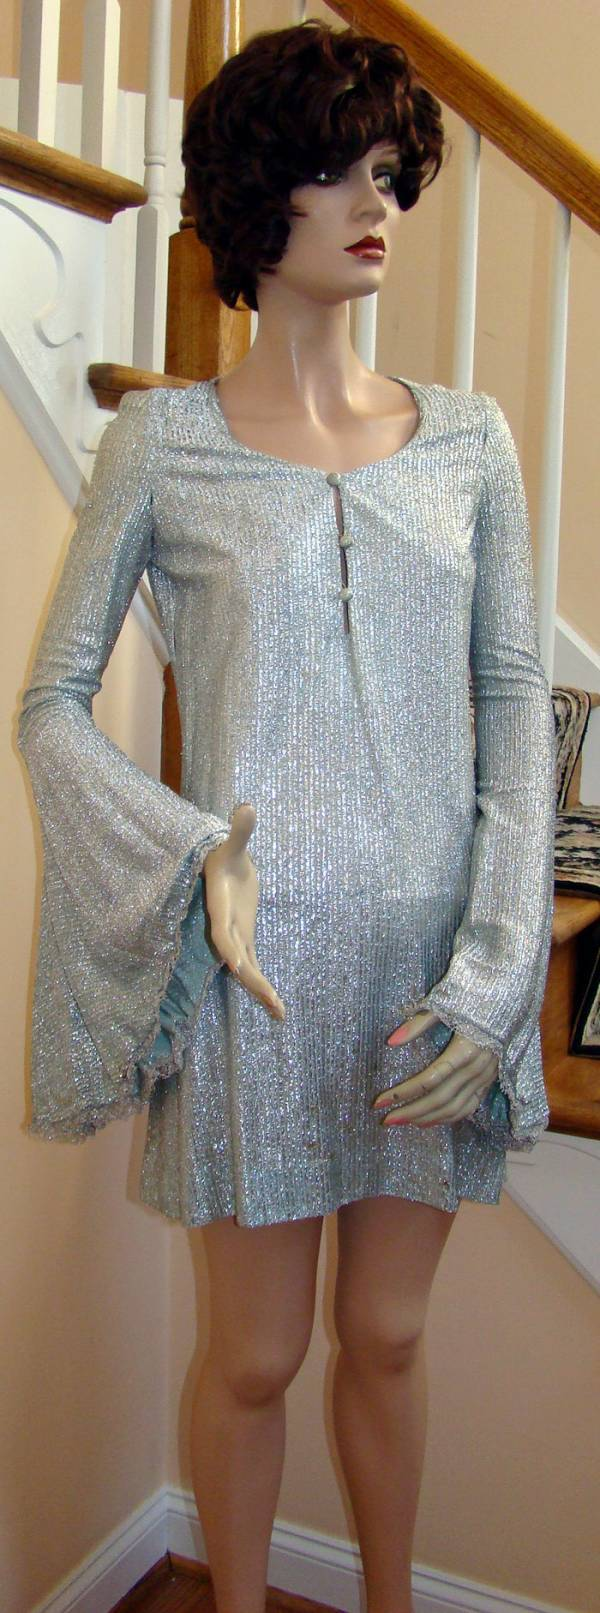 Vintage 1960s BETSEY JOHNSON for Paraphernalia Silver Lame MiniDress ...